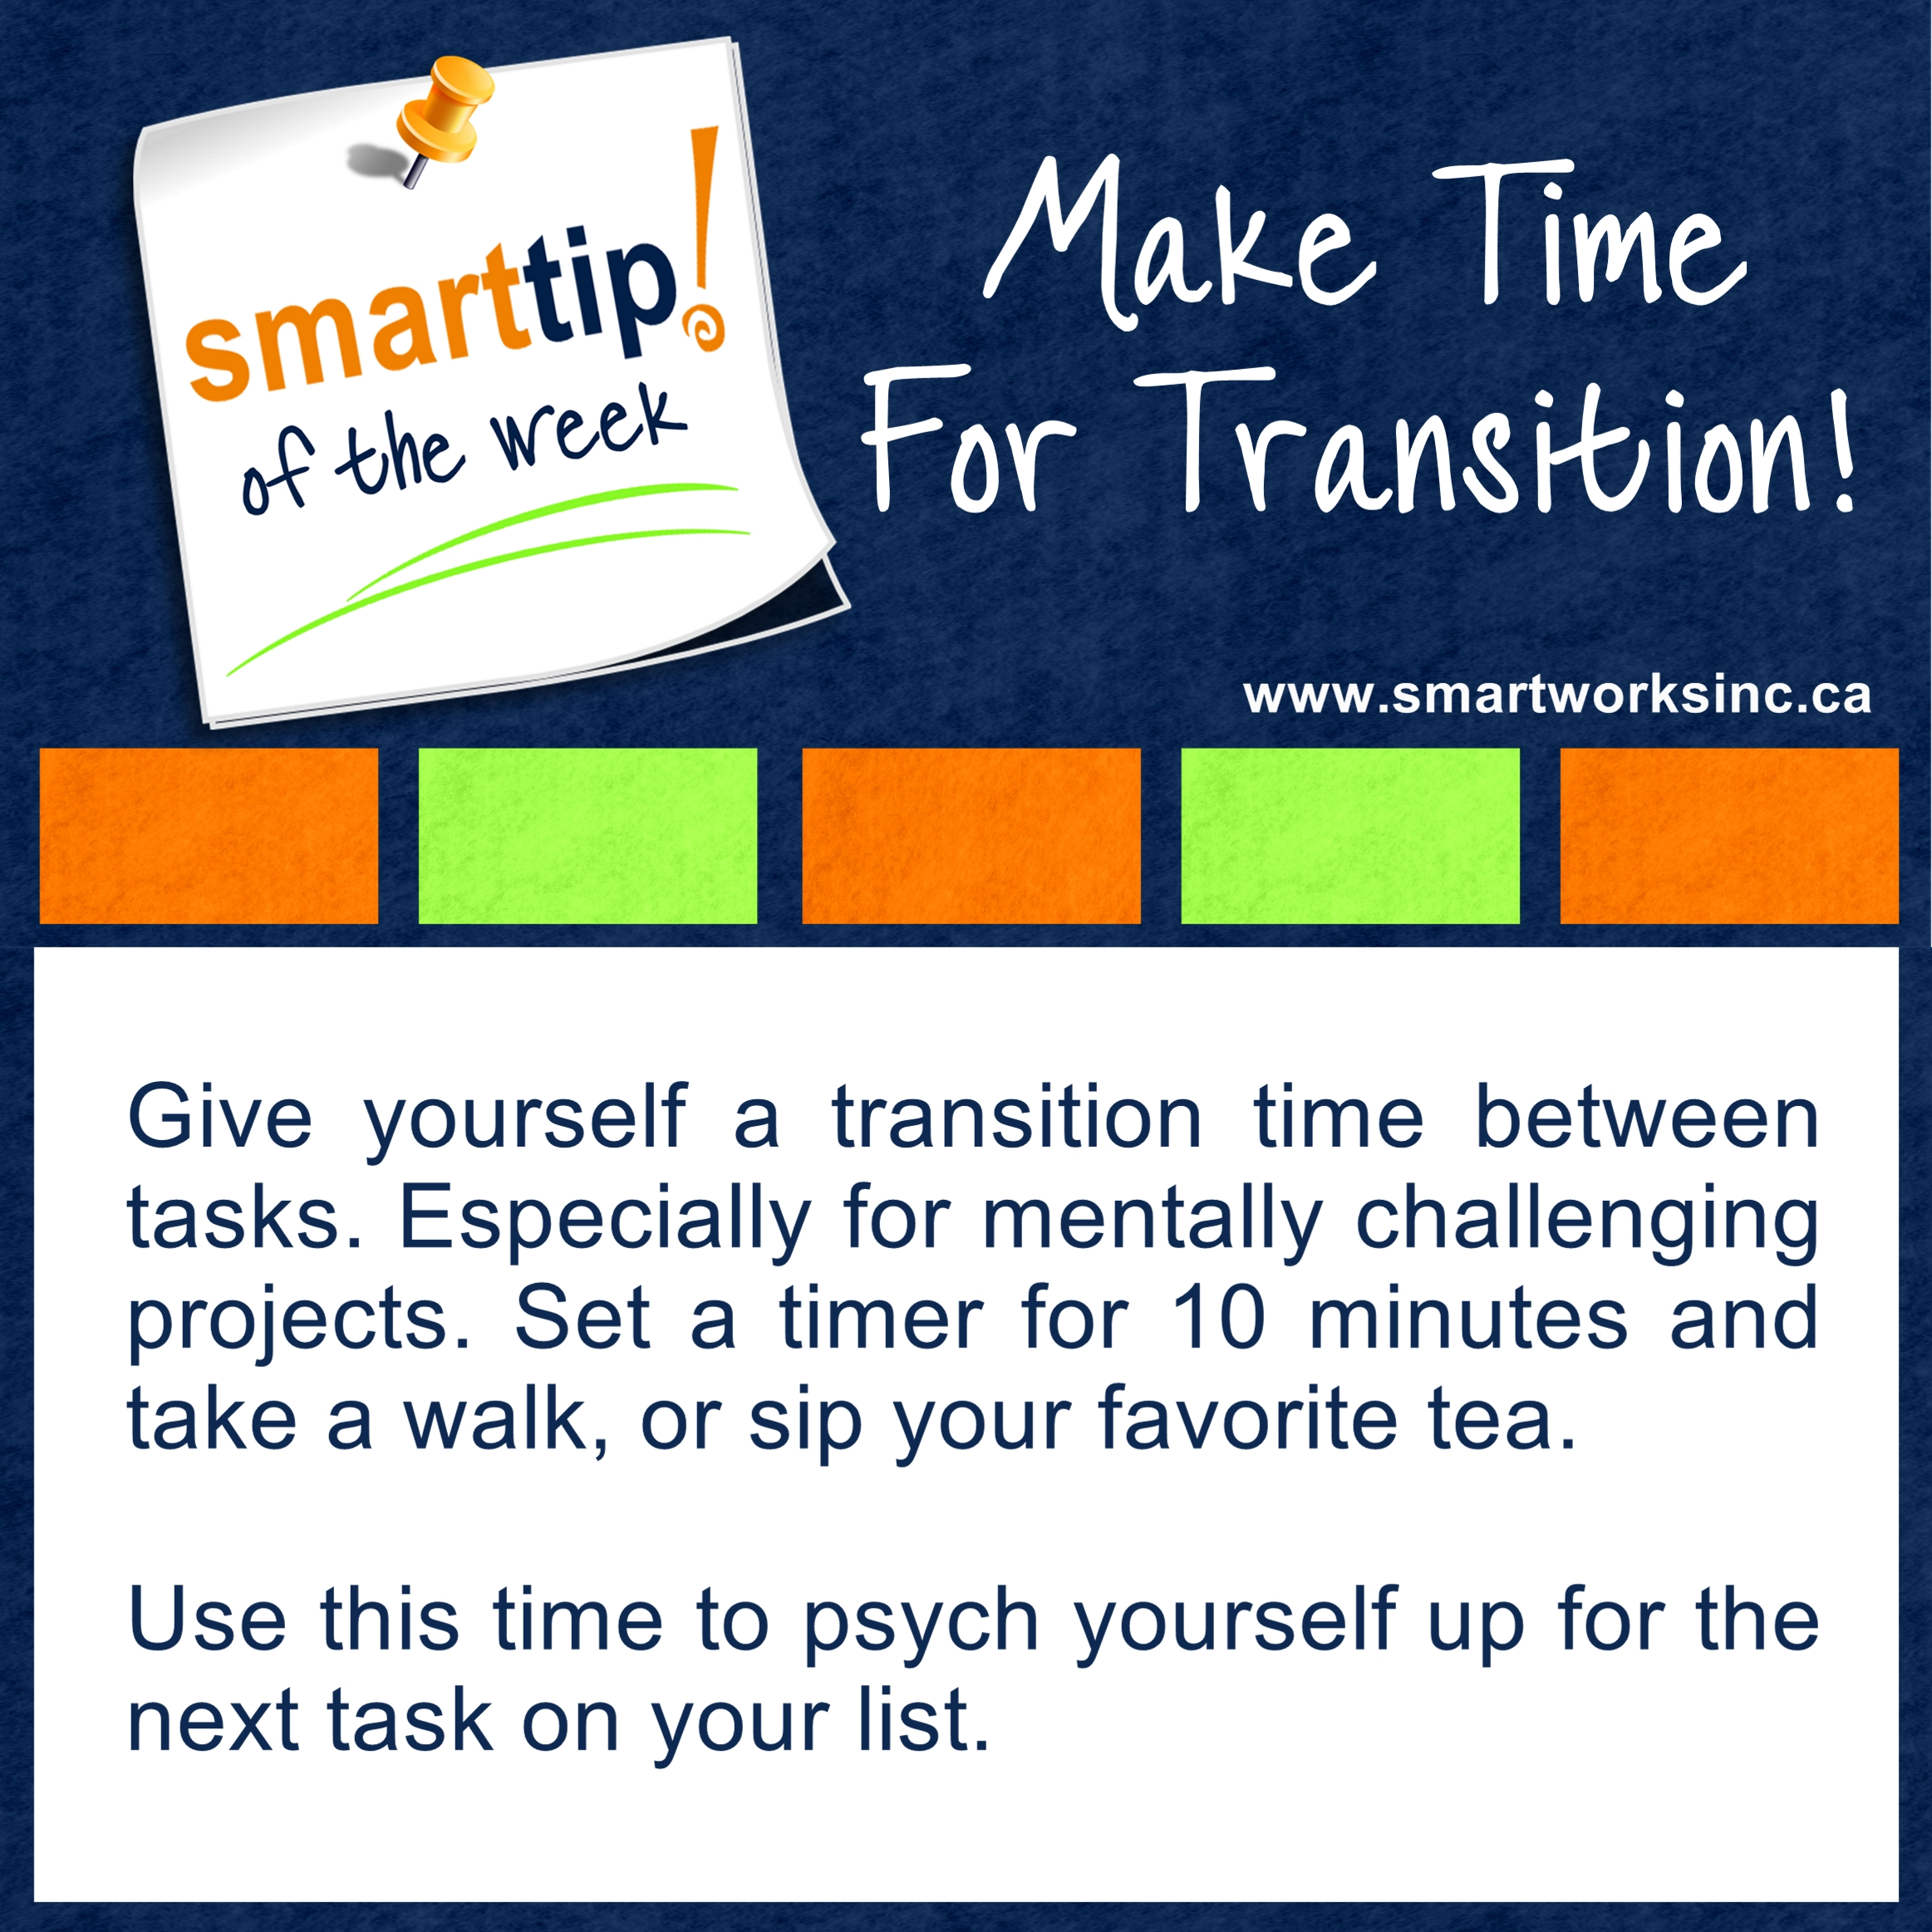 14-make-time-for-transition